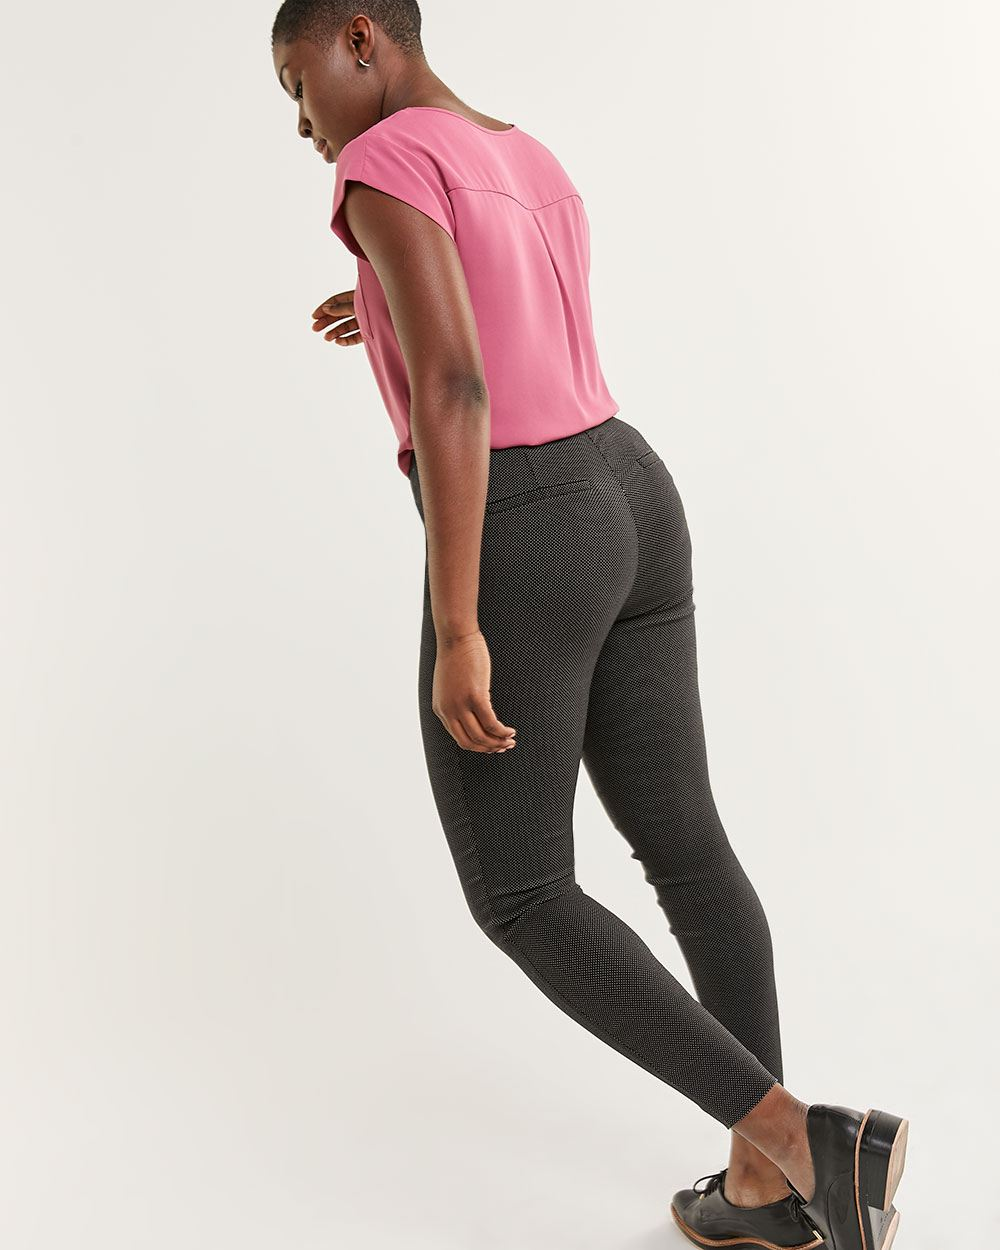 High Rise Printed Leggings The Iconic - Petite